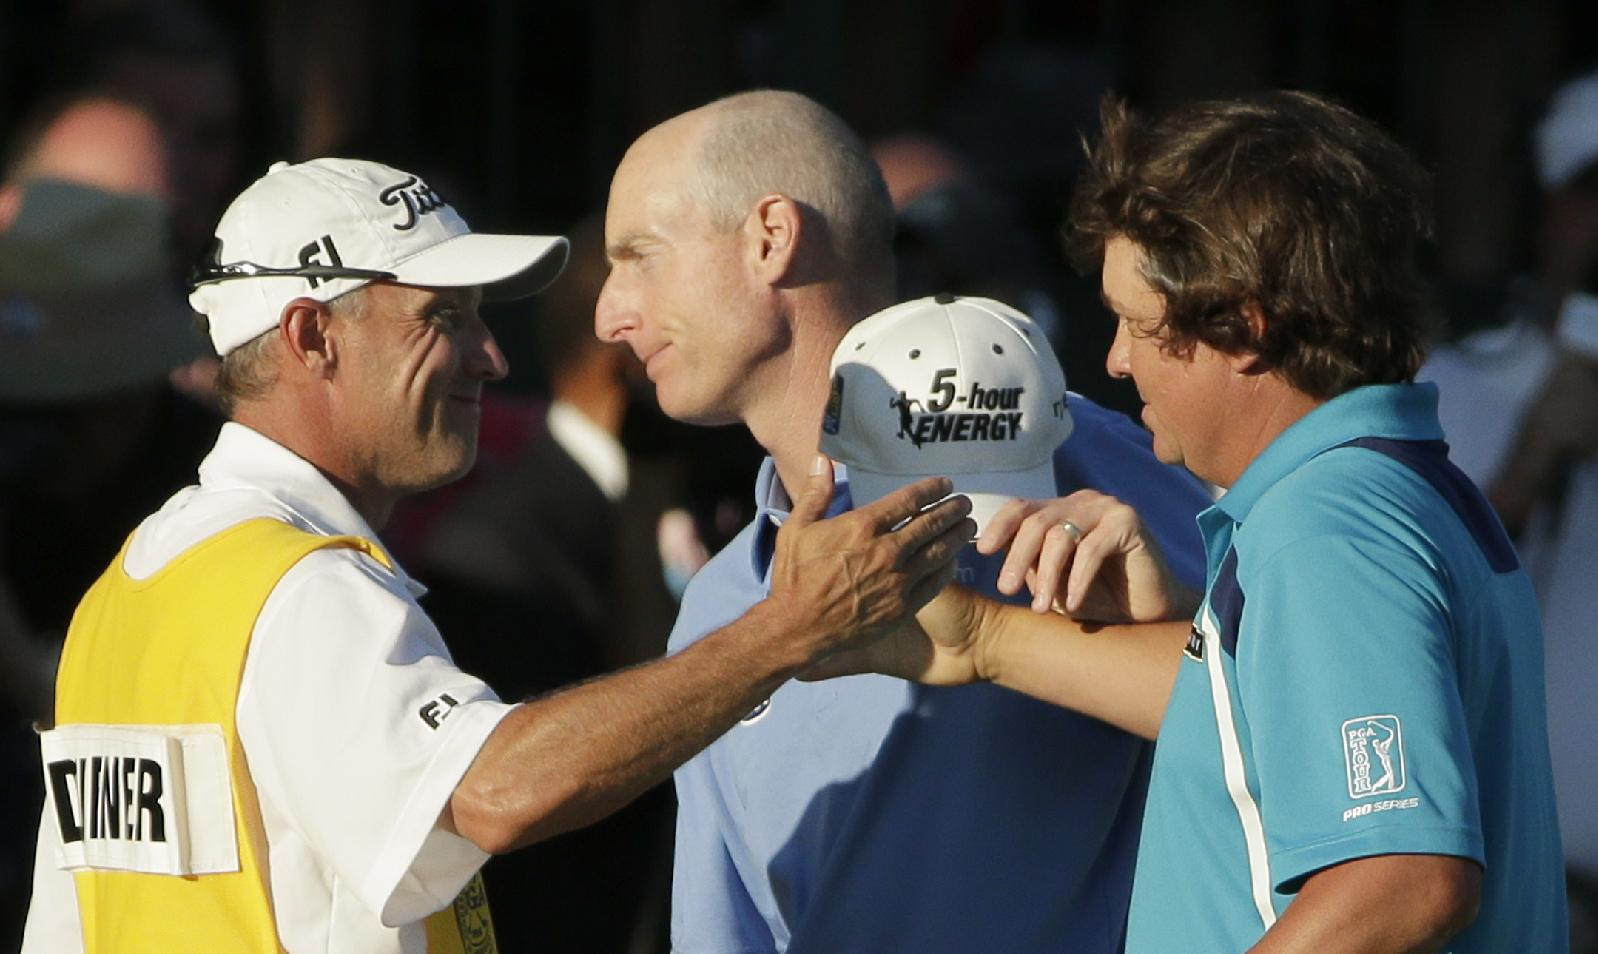 Jason Dufner, right, celebrates winning the PGA Championship as Jim Furyk, center, walks away. (AP)